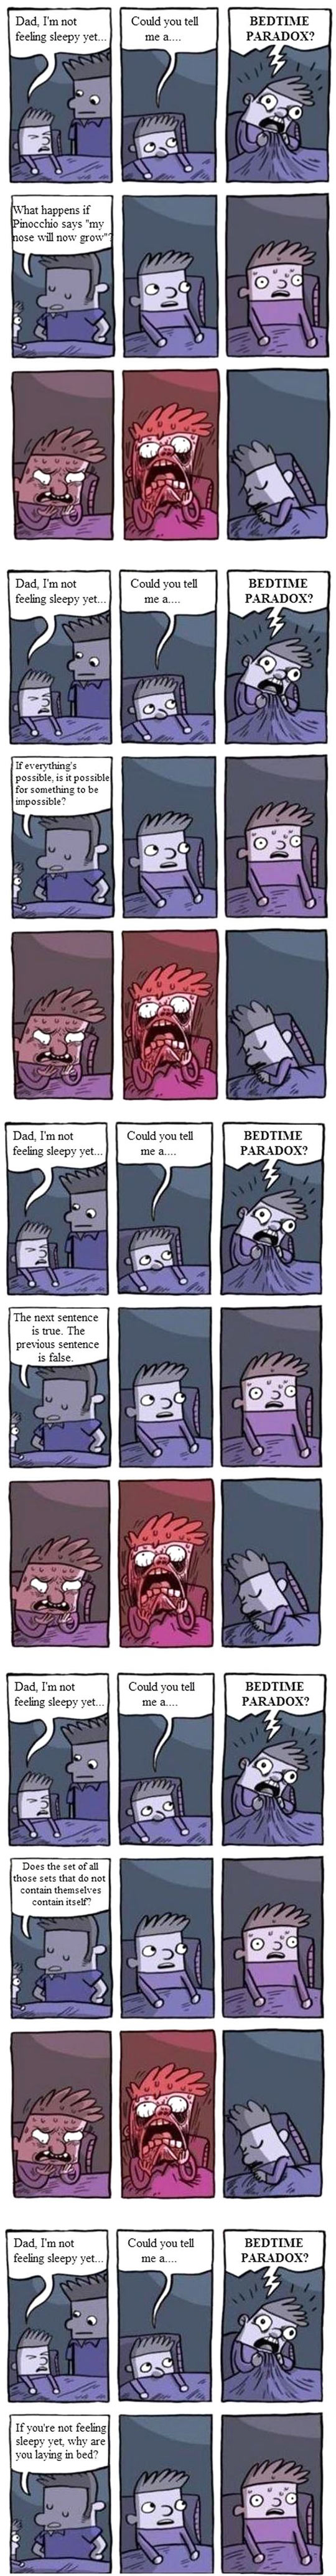 cool-bedtime-paradox-comic-compilation